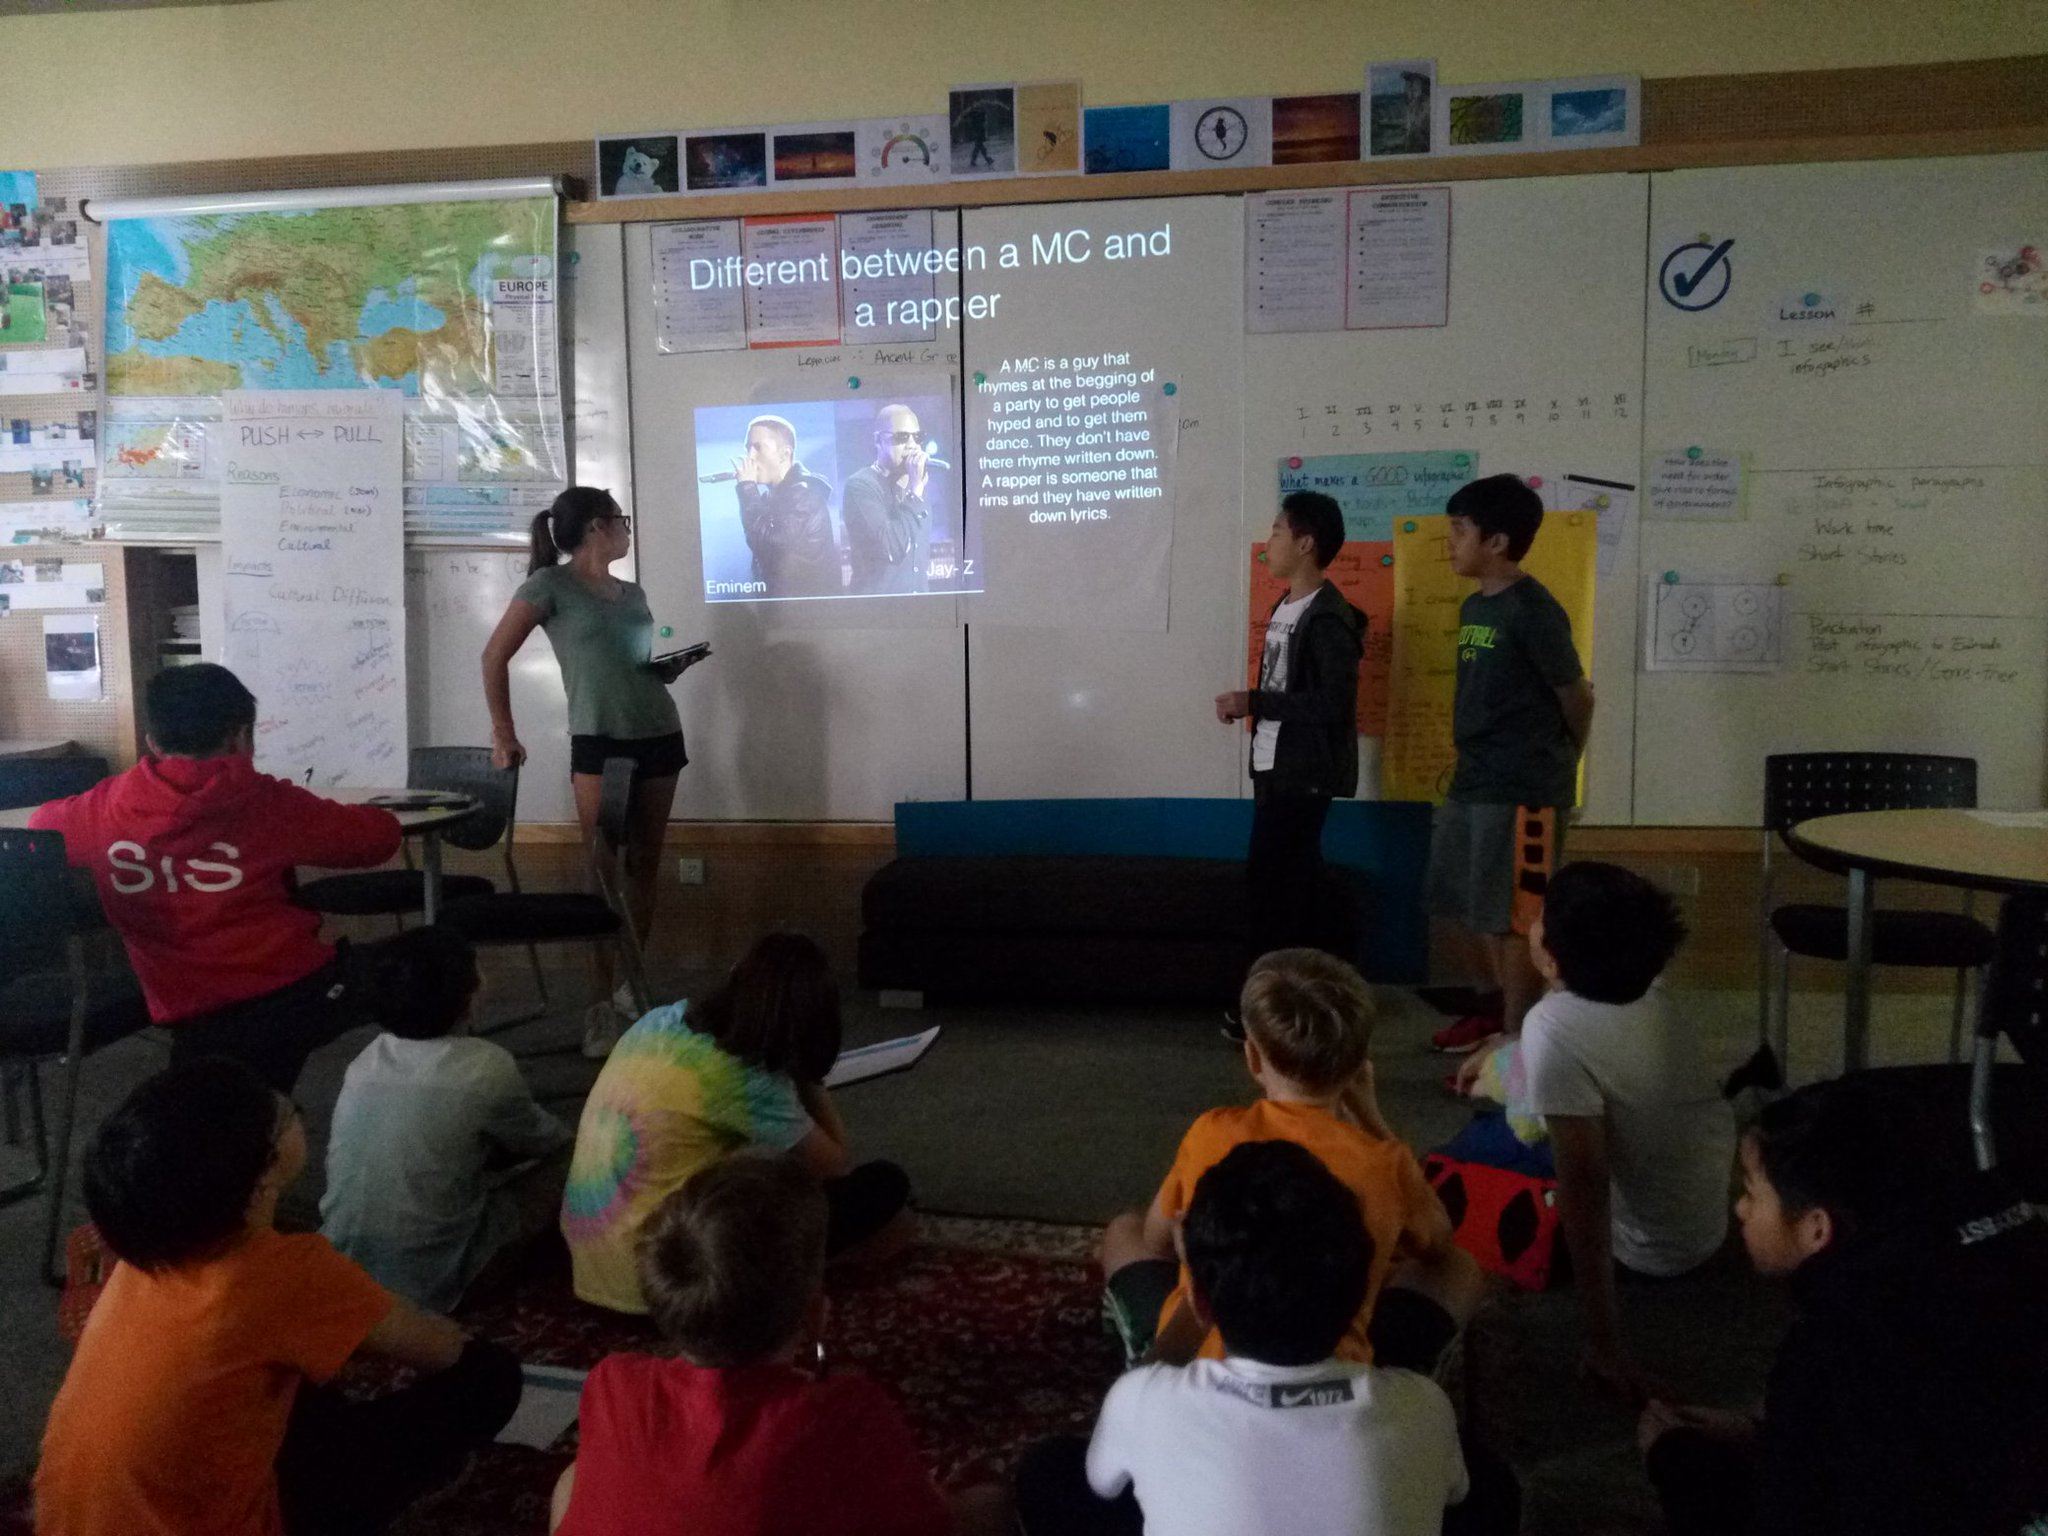 Difference between an MC and a rapper....#HipHopEd #nopassionleftbehind #hiphopcounselor #hiphop101 #sisrocks https://t.co/hxbKSrpEuY